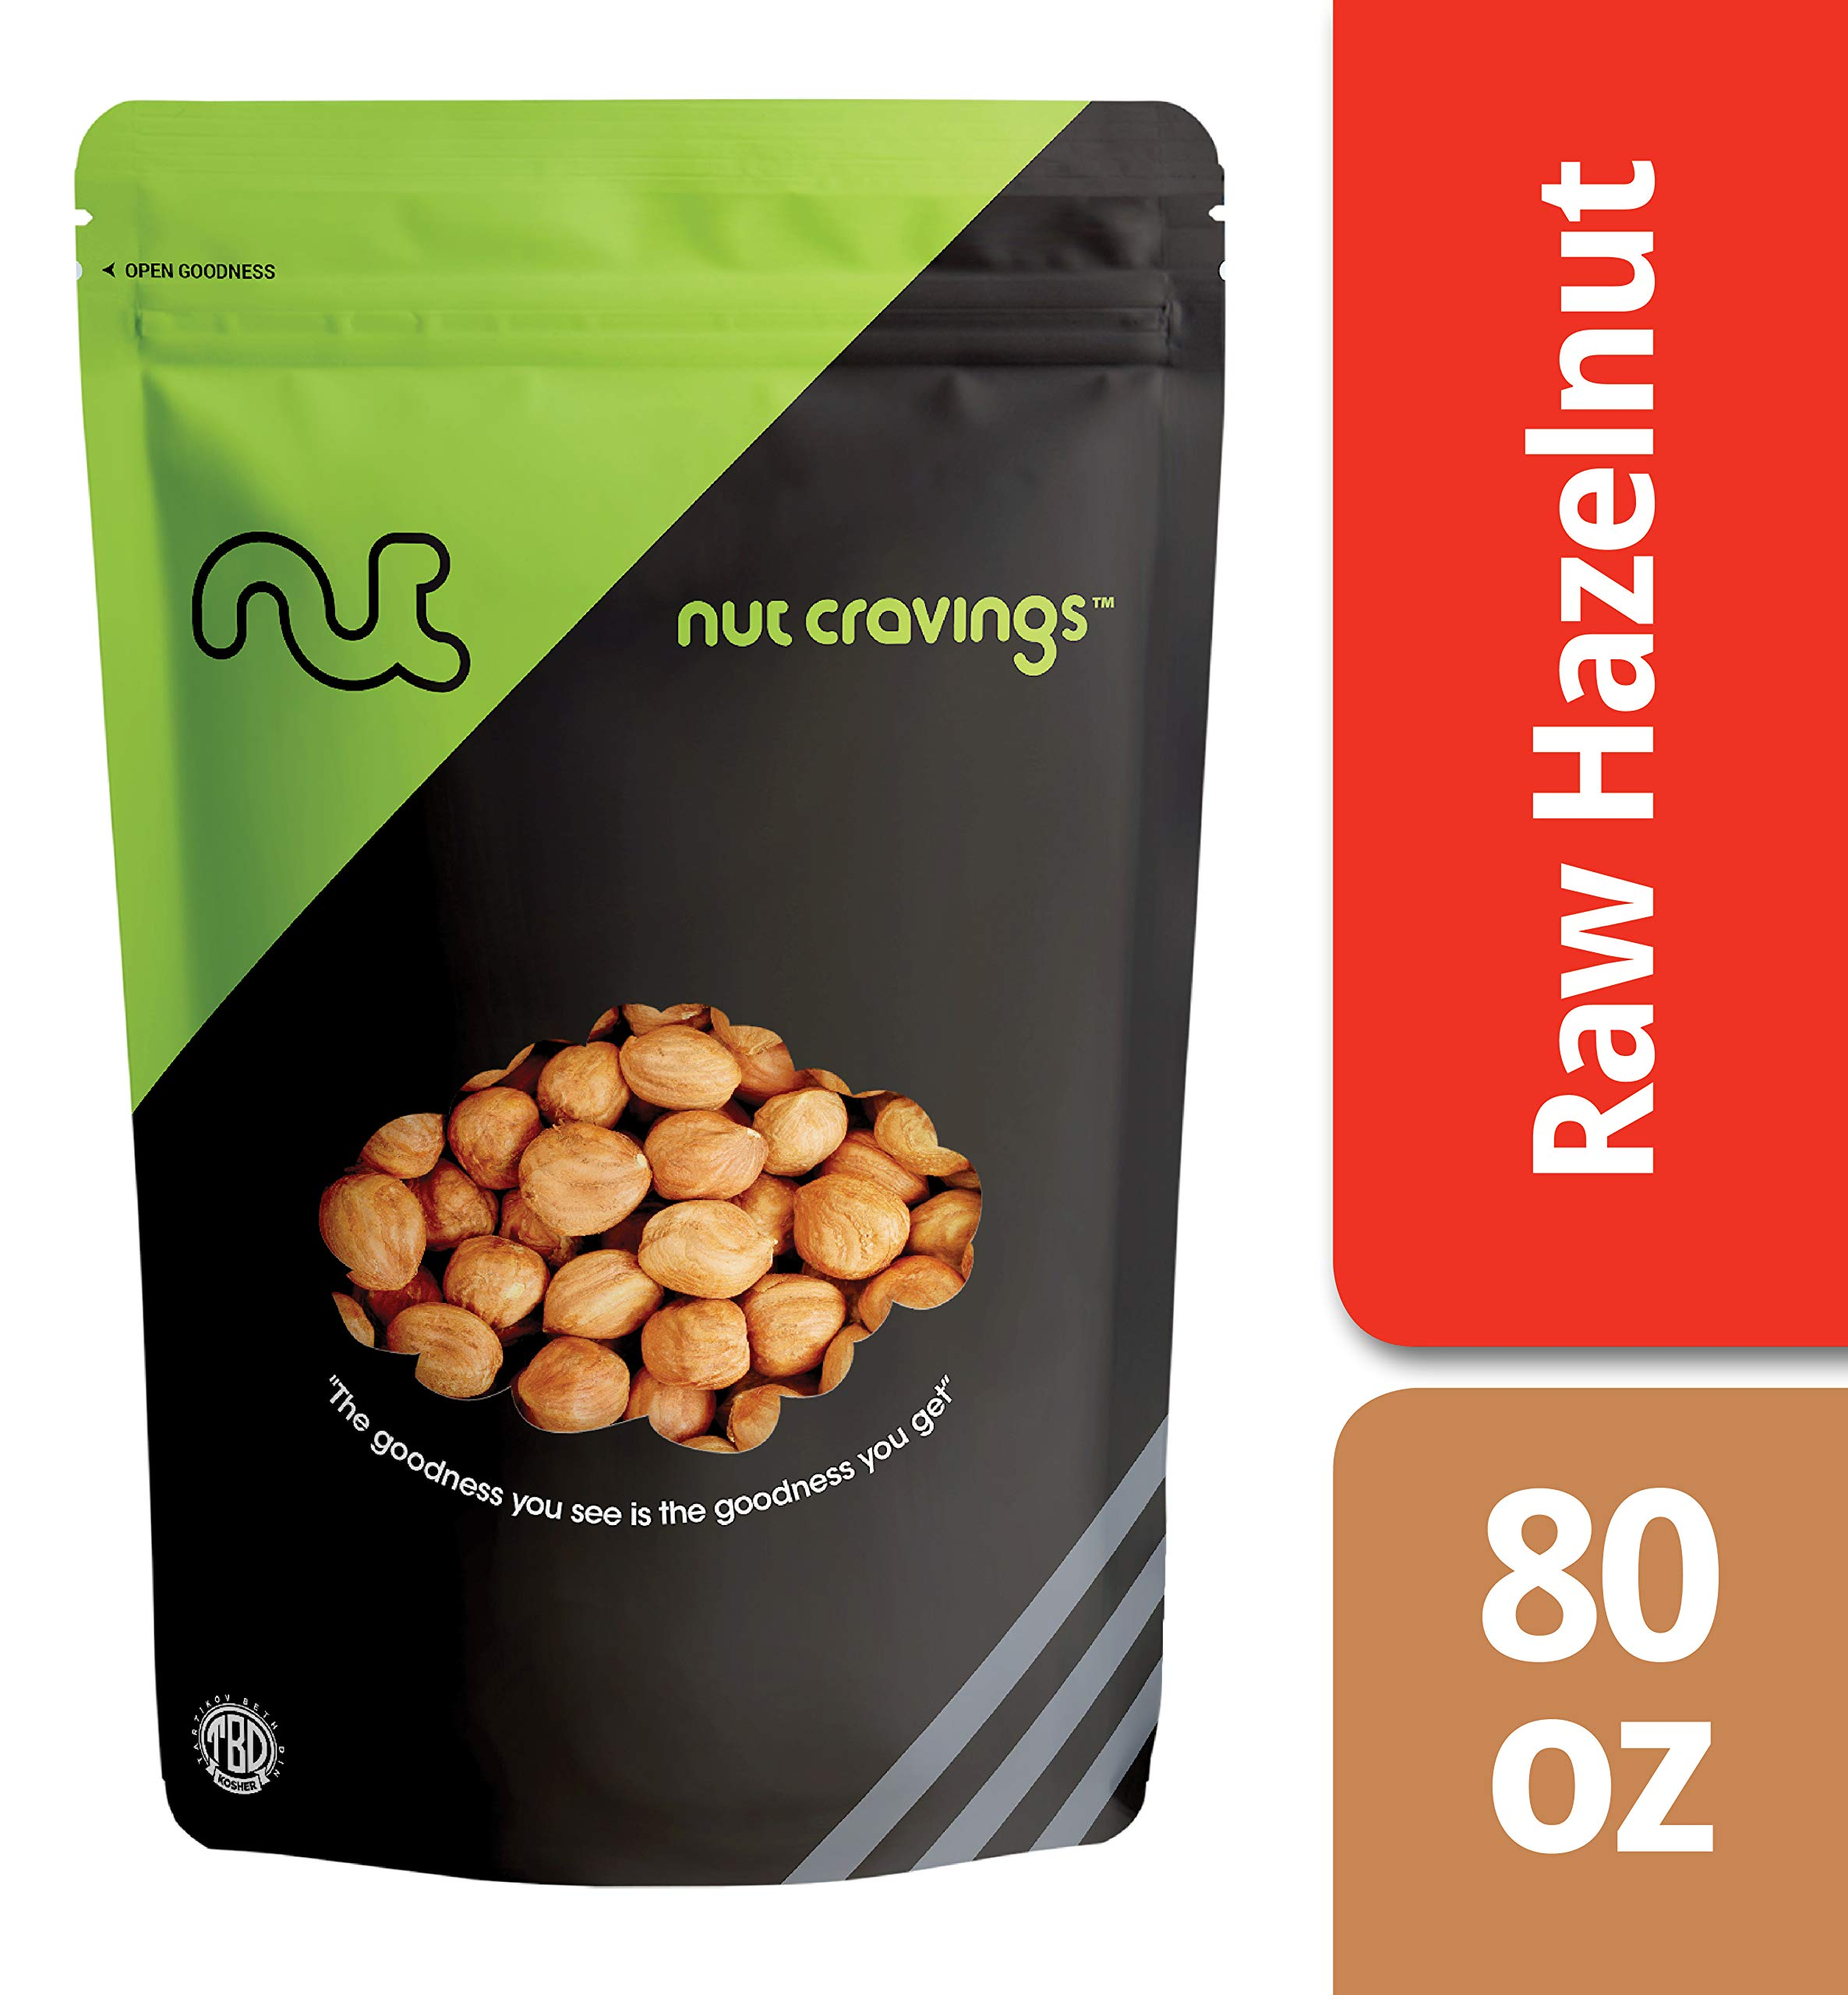 Nut Cravings - Raw Hazelnuts With Skin (5 Pounds) – Gourmet Resealable Pack of Shelled Filberts – 80 Ounce